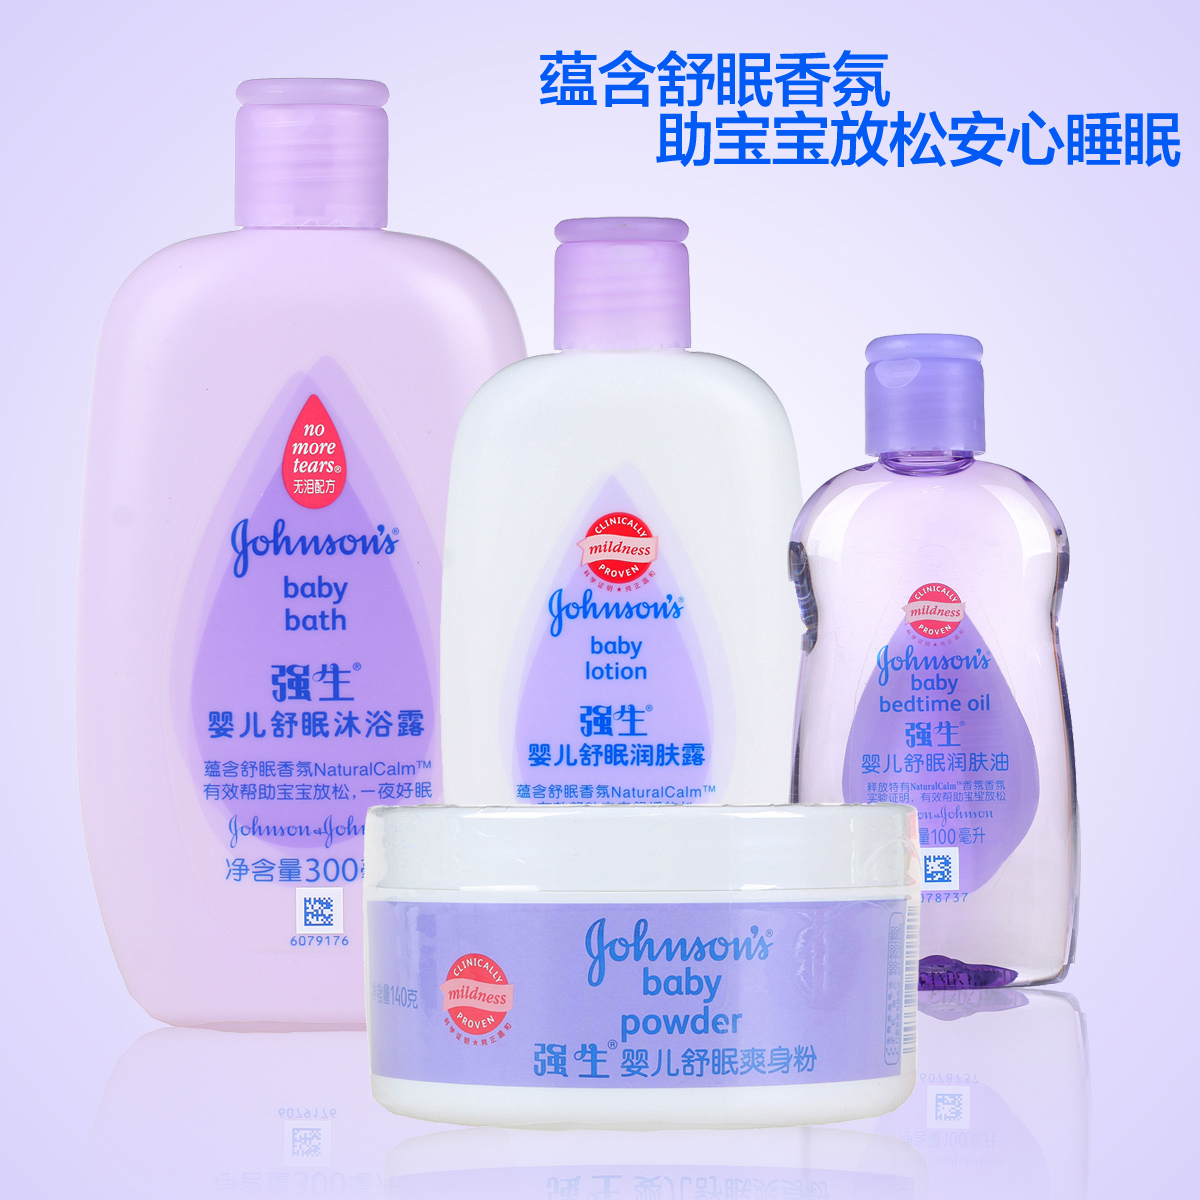 China Baby Bath Lotion Shopping Guide At Zwitsal Natural Skin Protector 100ml Tub Get Quotations Johnsons Shu Mian Supplies Care 4 Sets Of Shower Gel Body